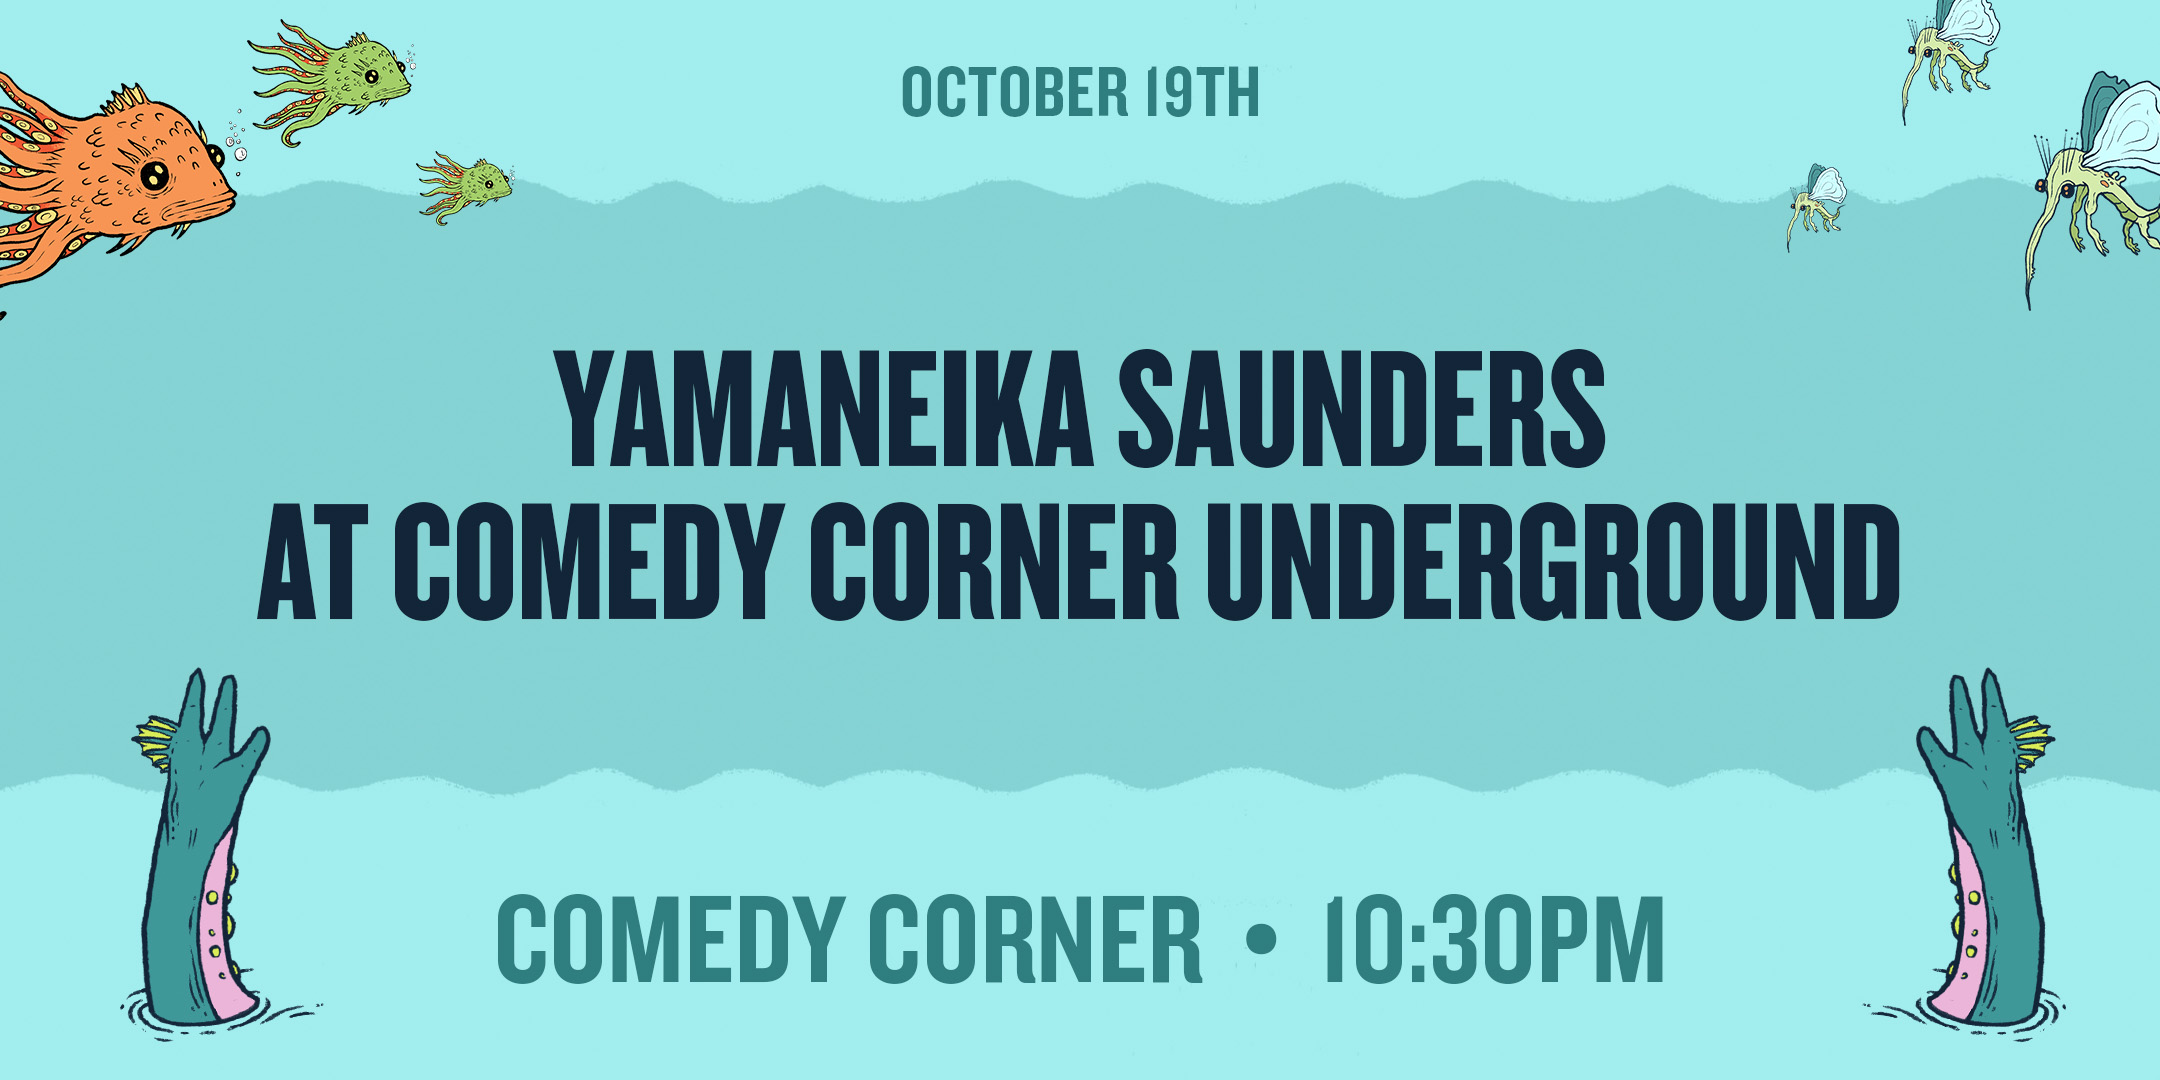 OCT19-Yamaneika Saunders at CCU.jpg